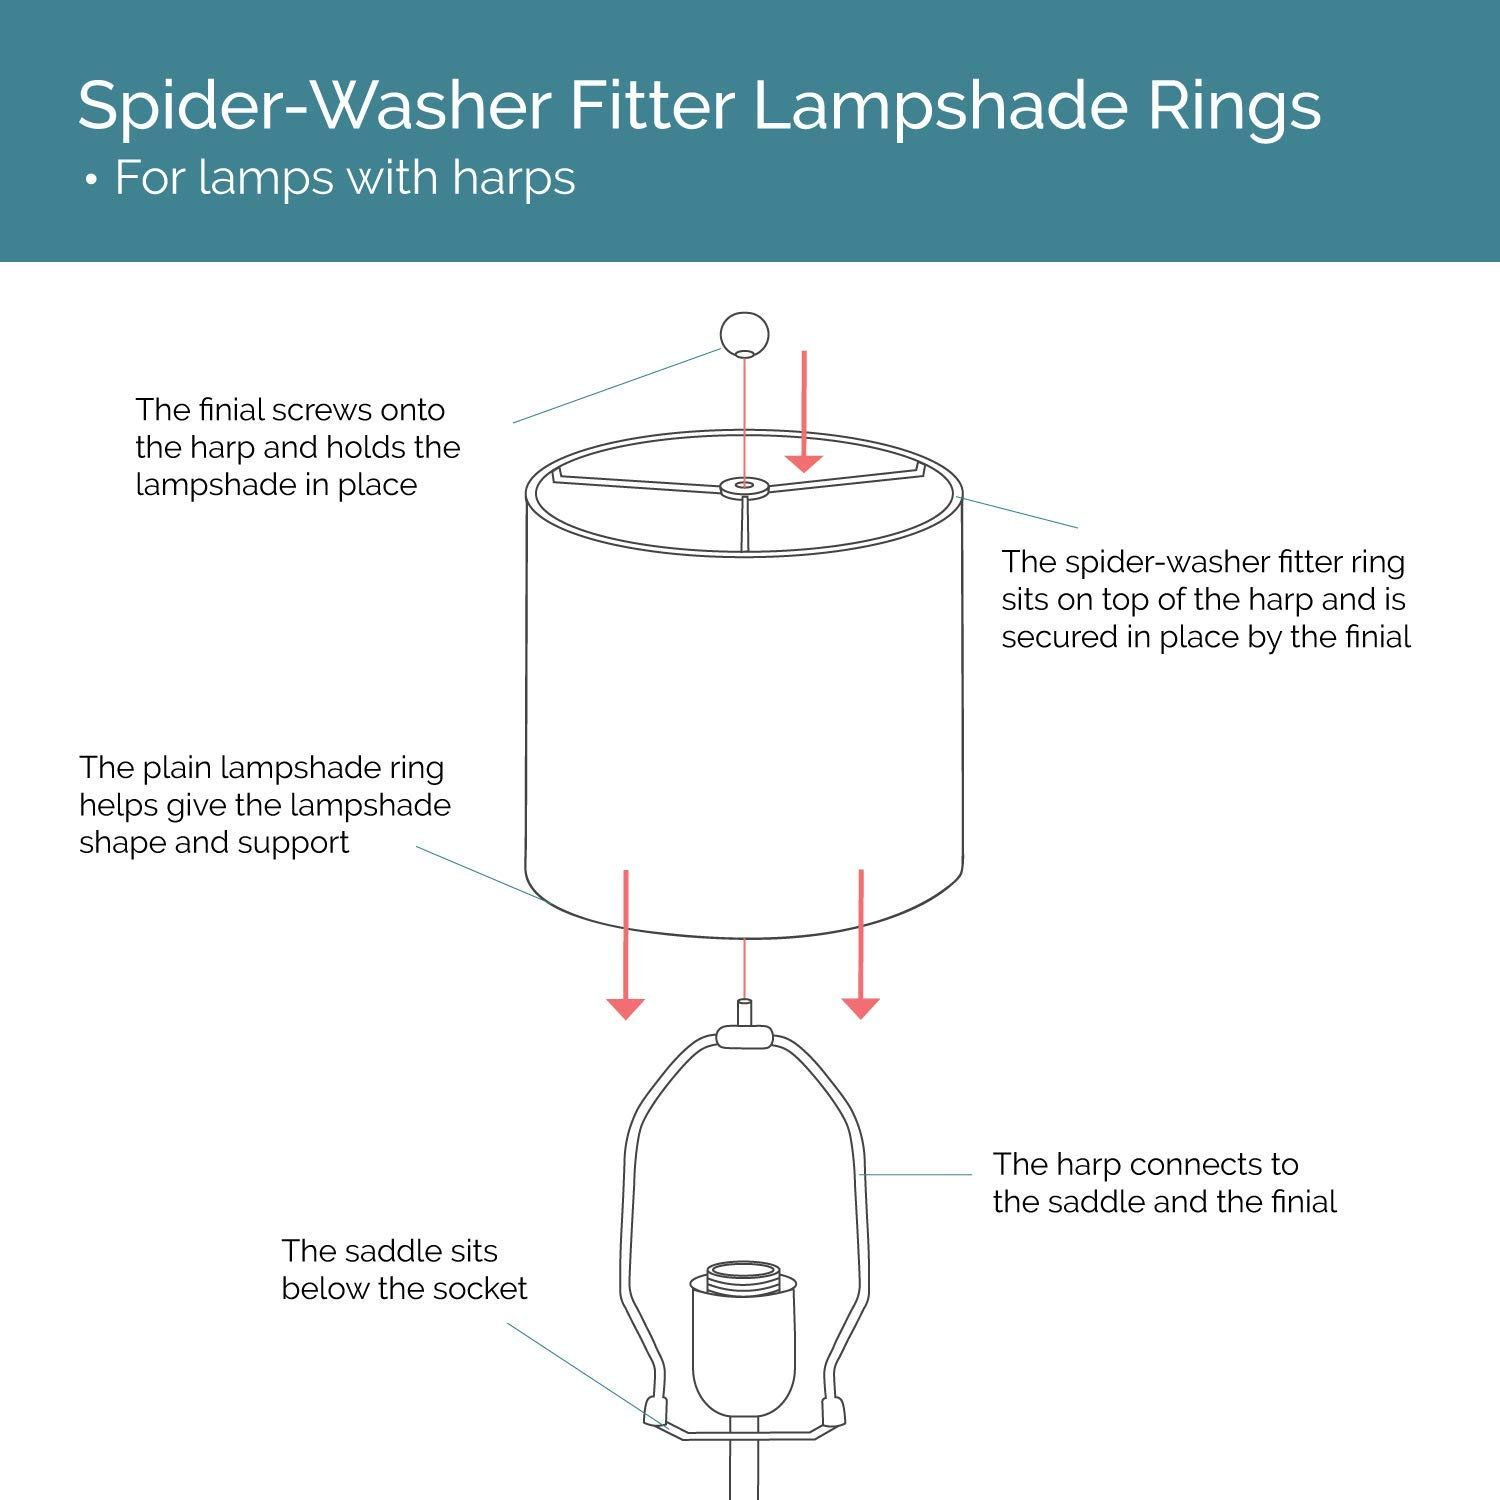 Izcq97mtvrpg9m What is a spider fitter lamp shade